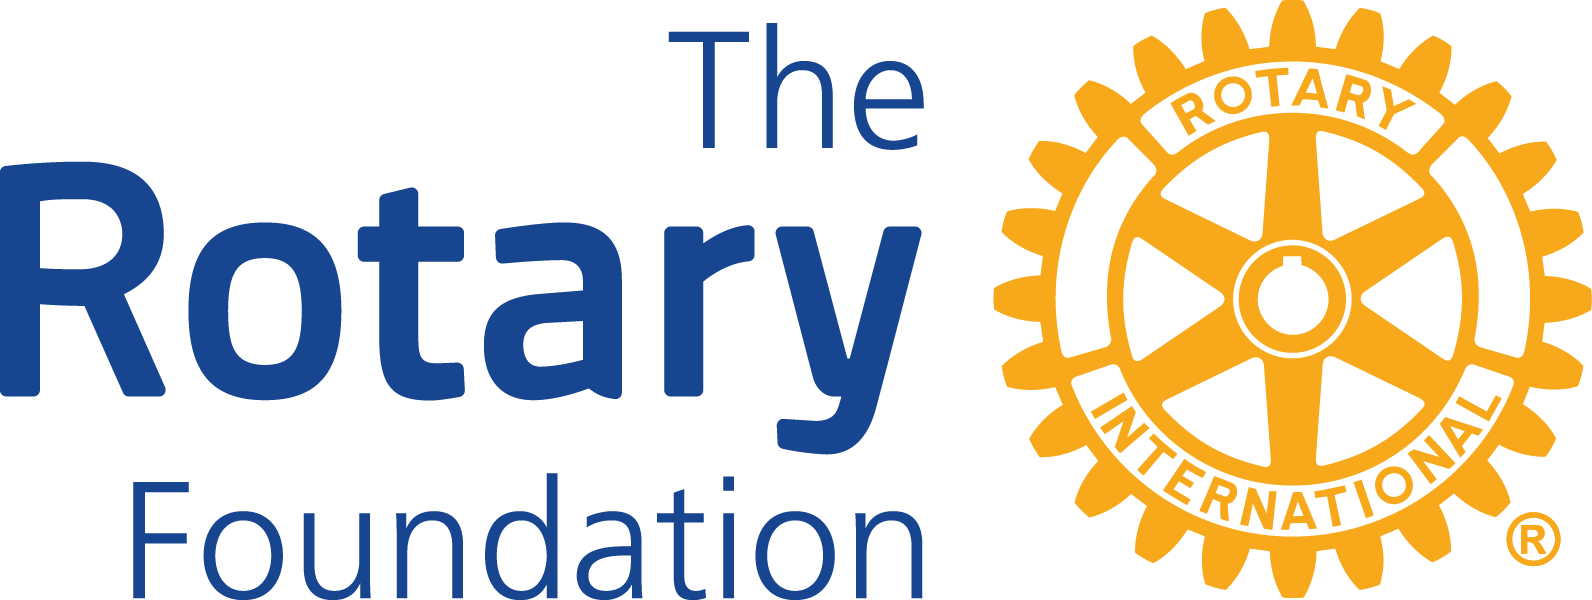 FM Rotary Foundation logo